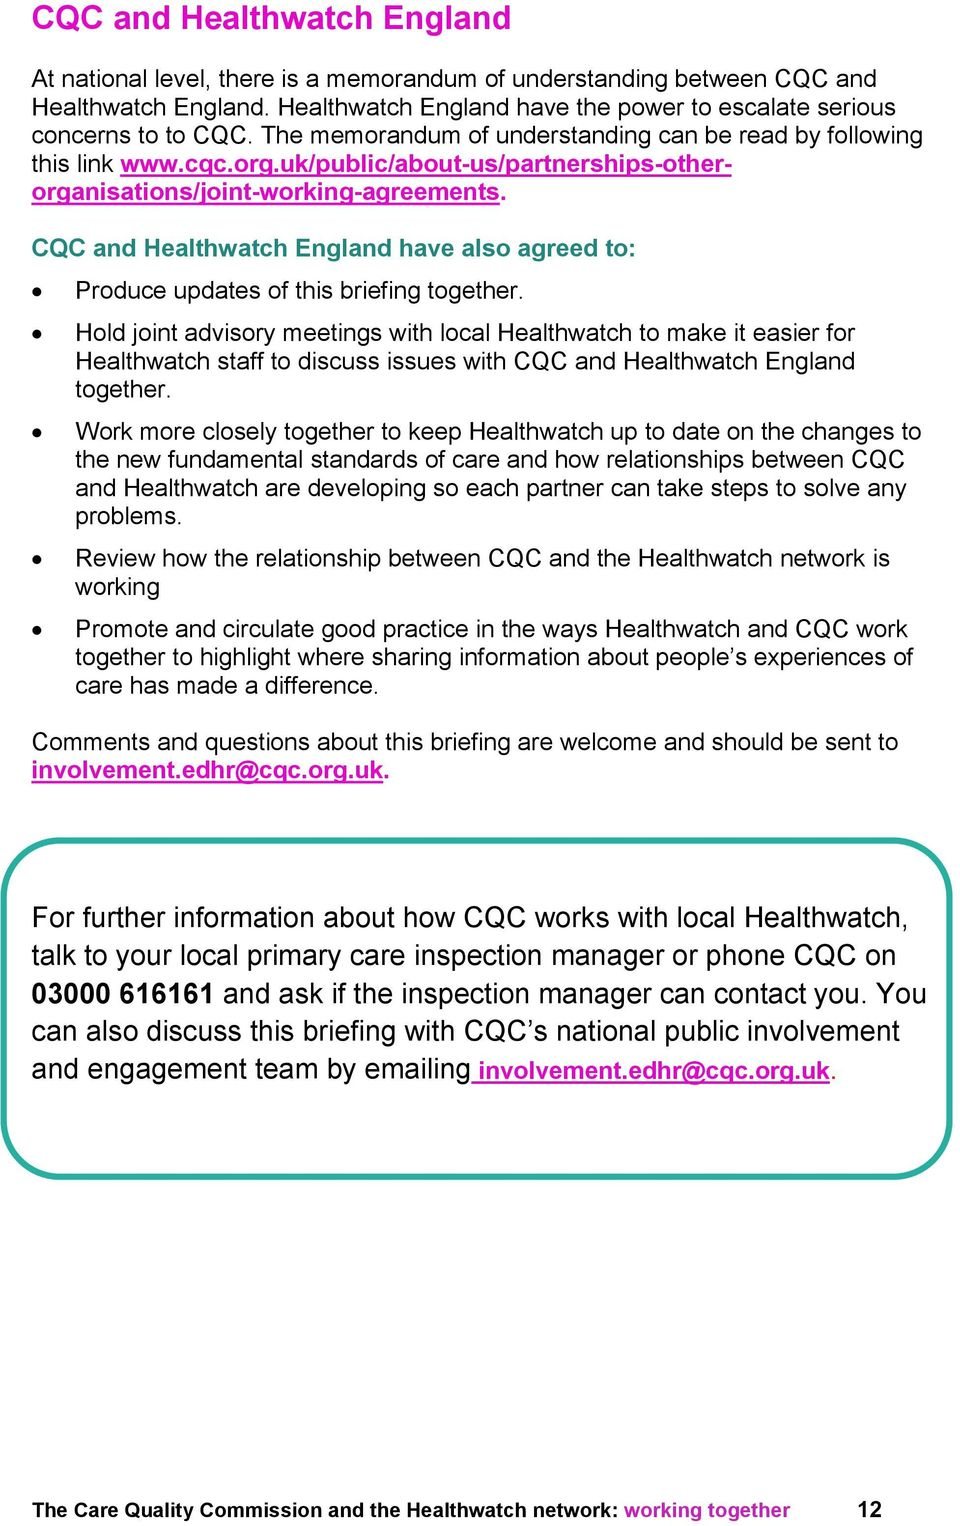 CQC and Healthwatch England have also agreed to: Produce updates of this briefing together.